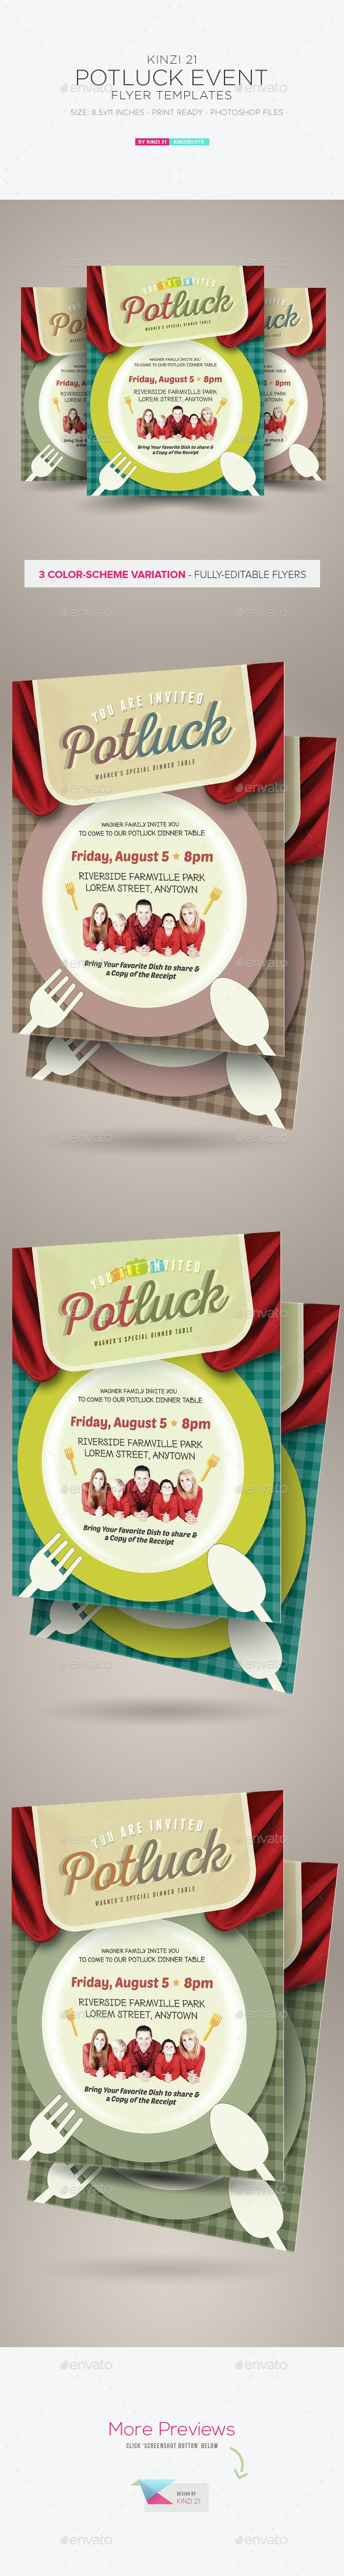 Potluck Event Flyers - Miscellaneous Events